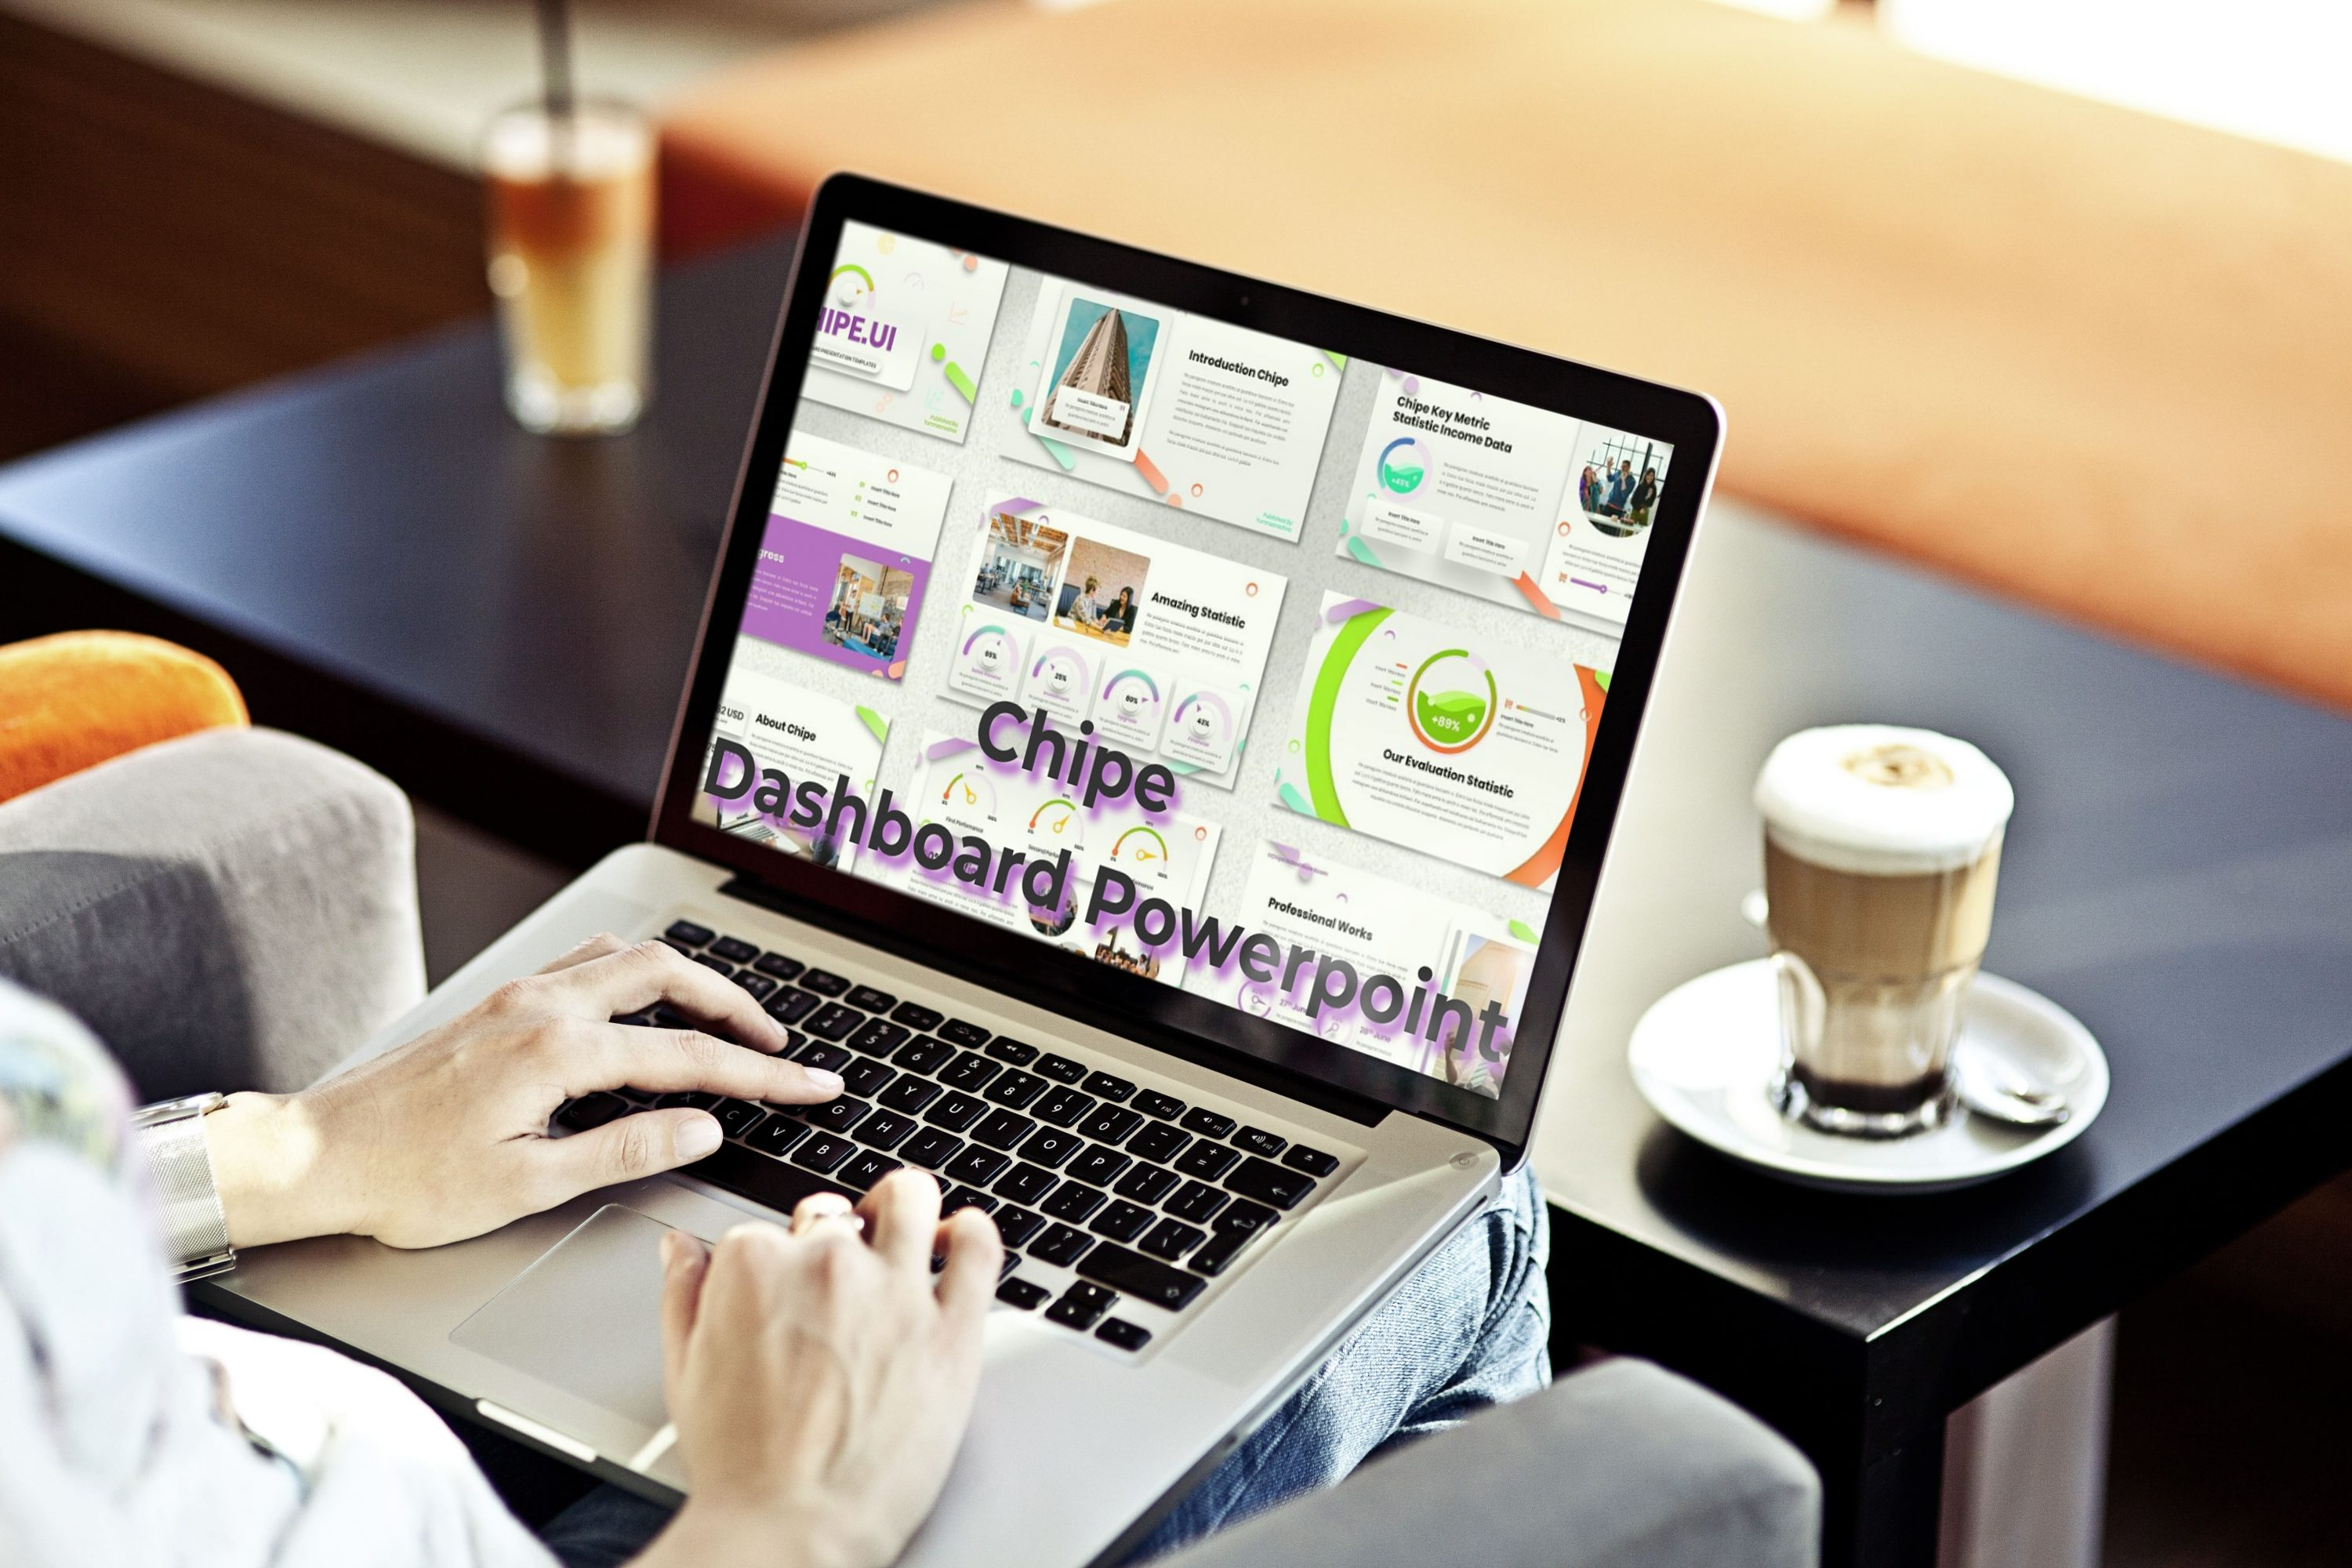 Laptop option of the Chipe - UI Dashboard Powerpoint.